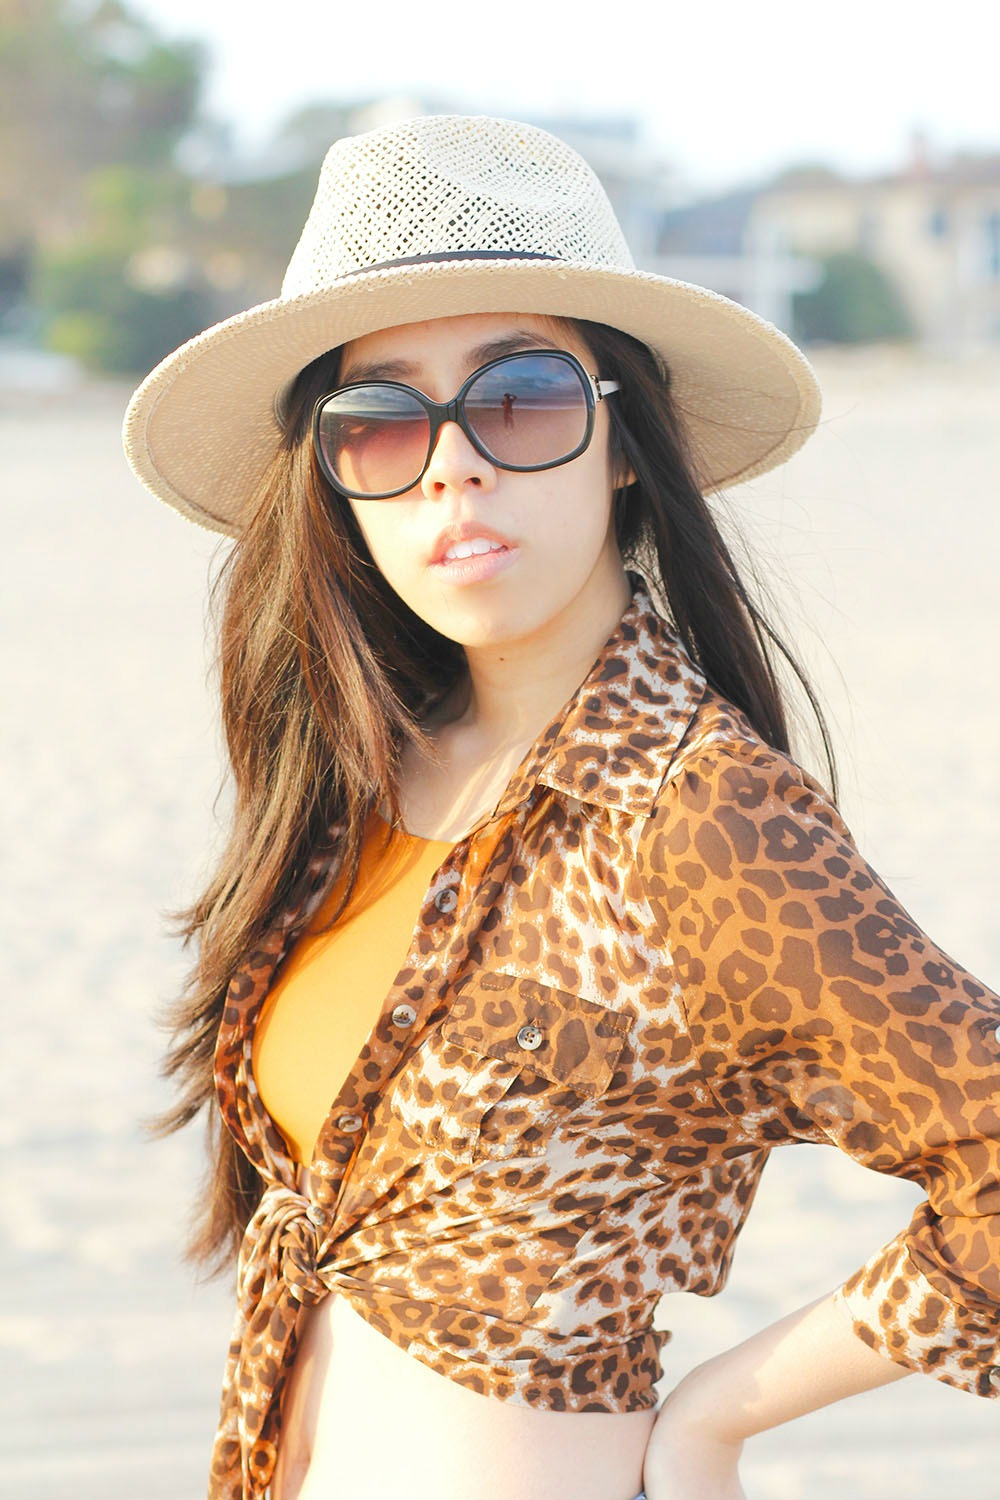 Adrienne Nguyen_Invictus_What to wear to a beach party